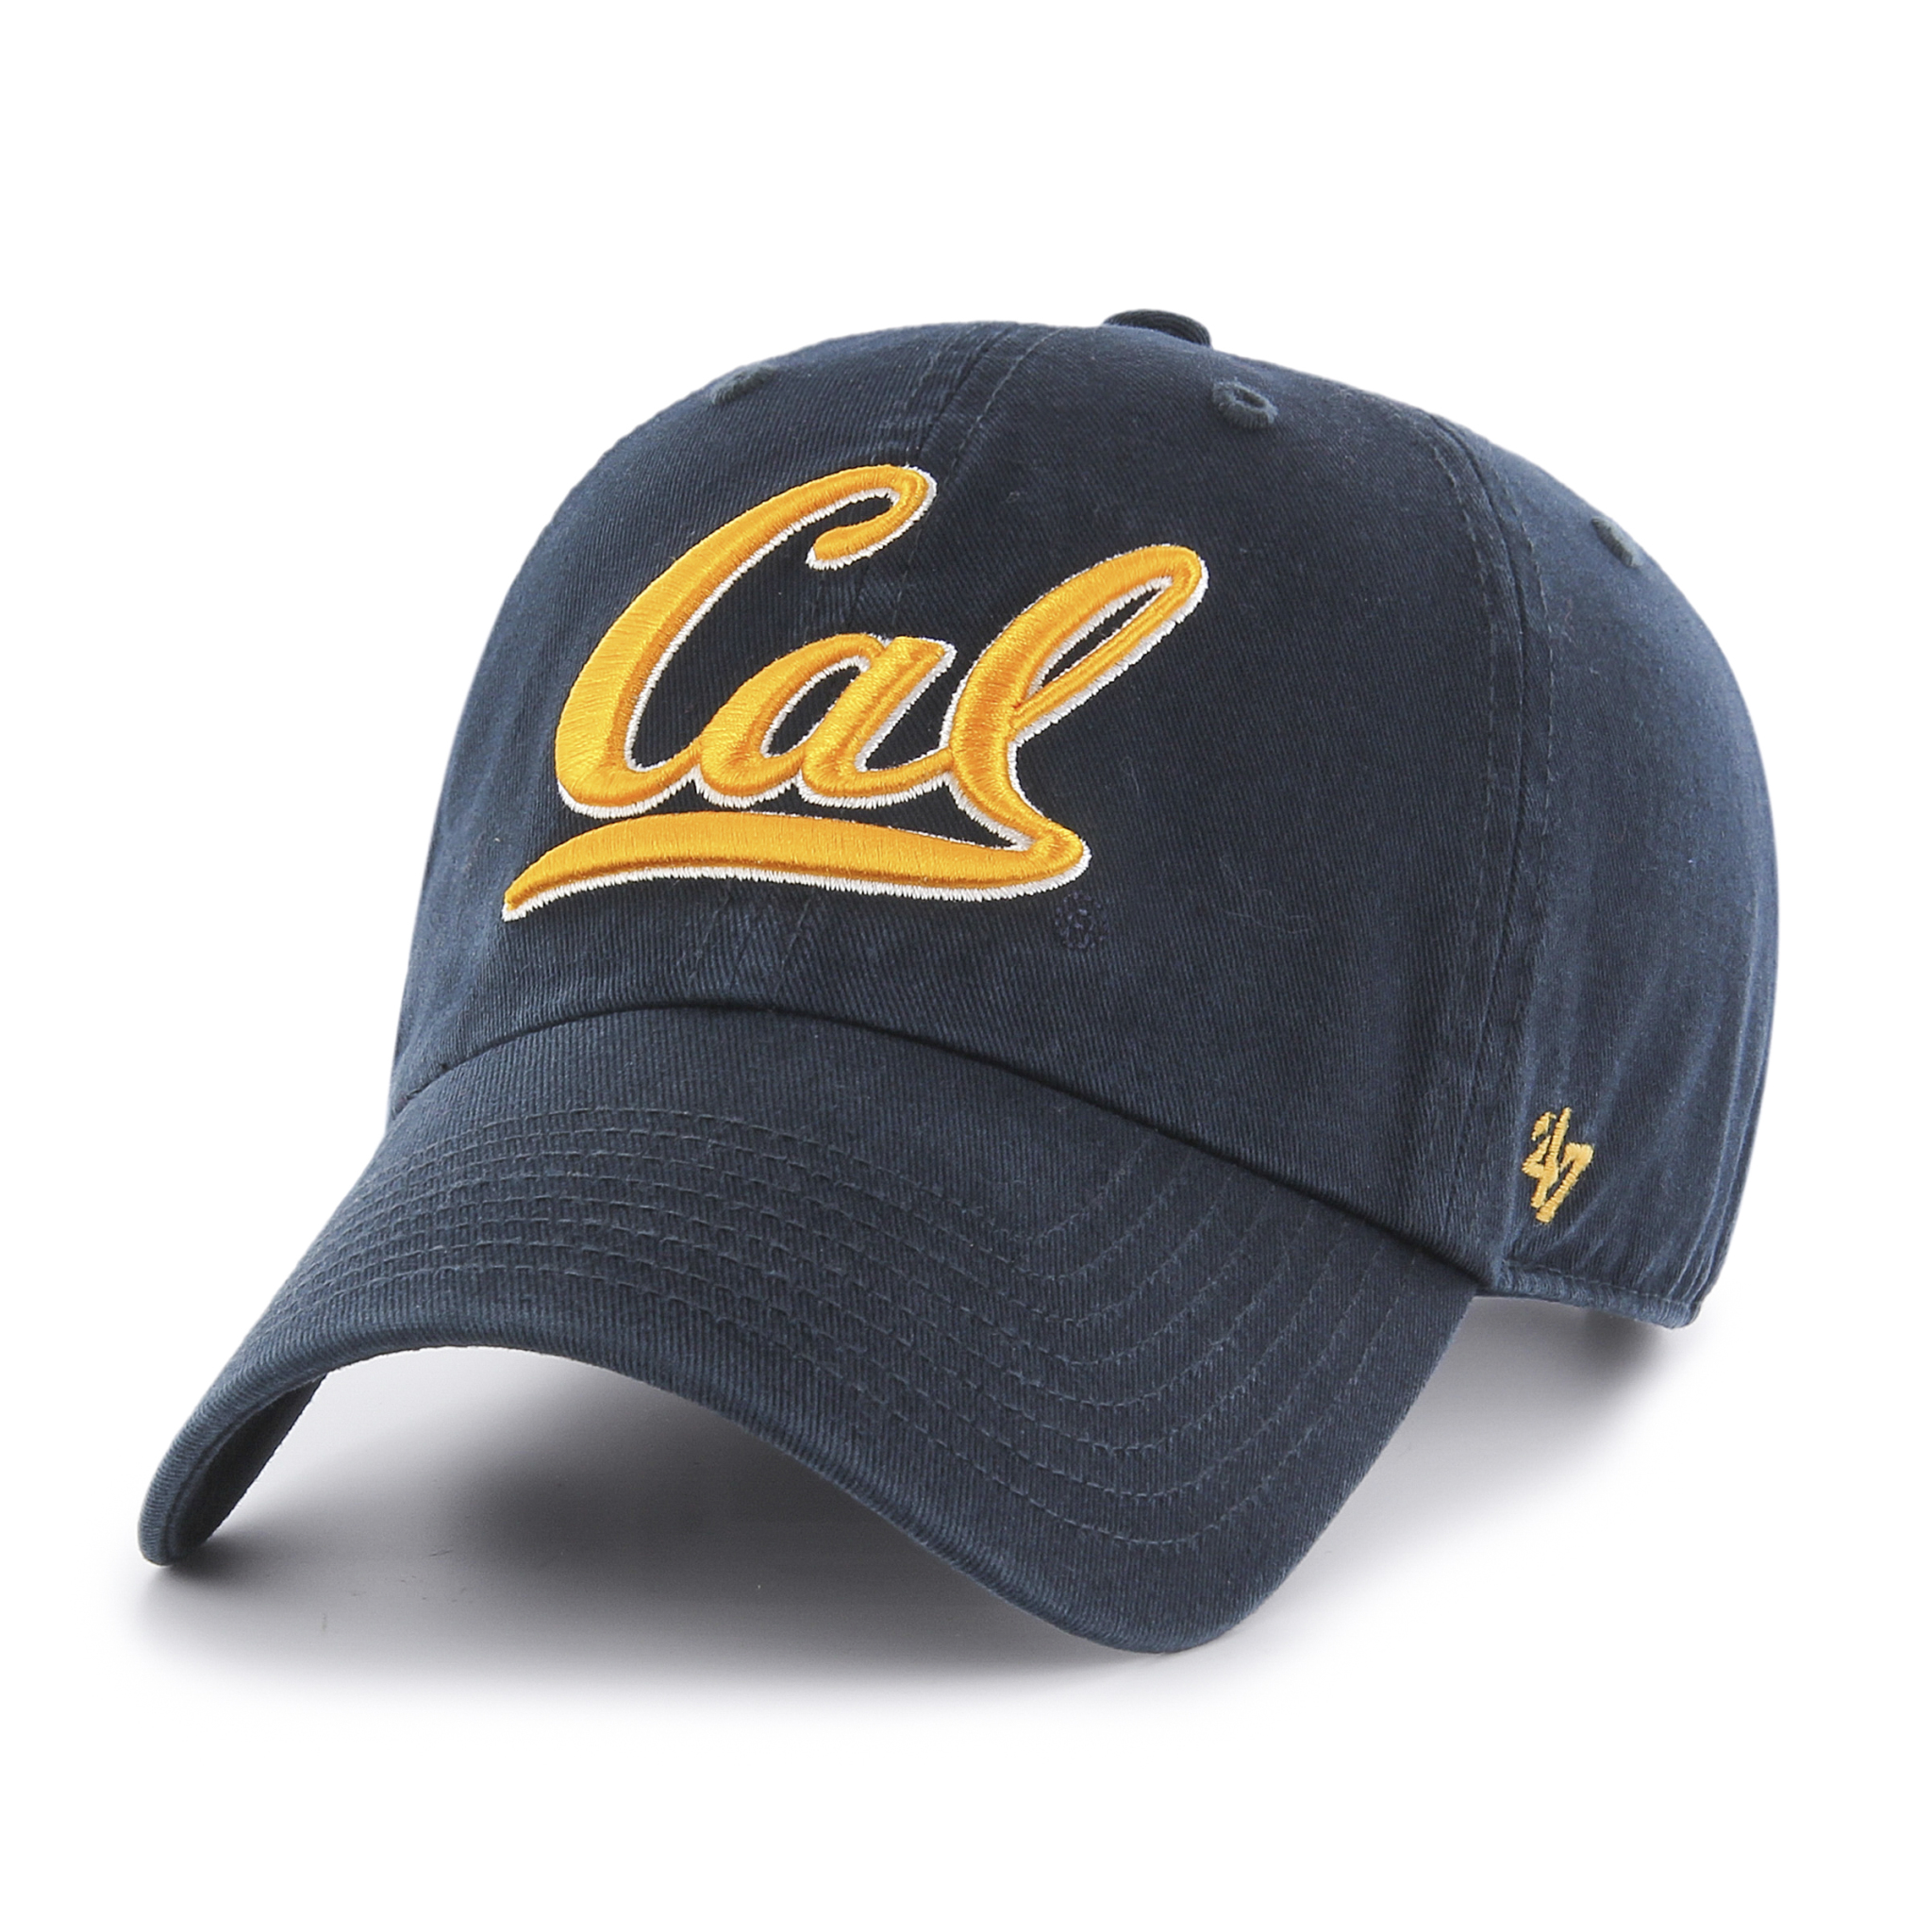 Cal Bears Youth '47 Short Stack Kids Cleanup Adjustable Hat